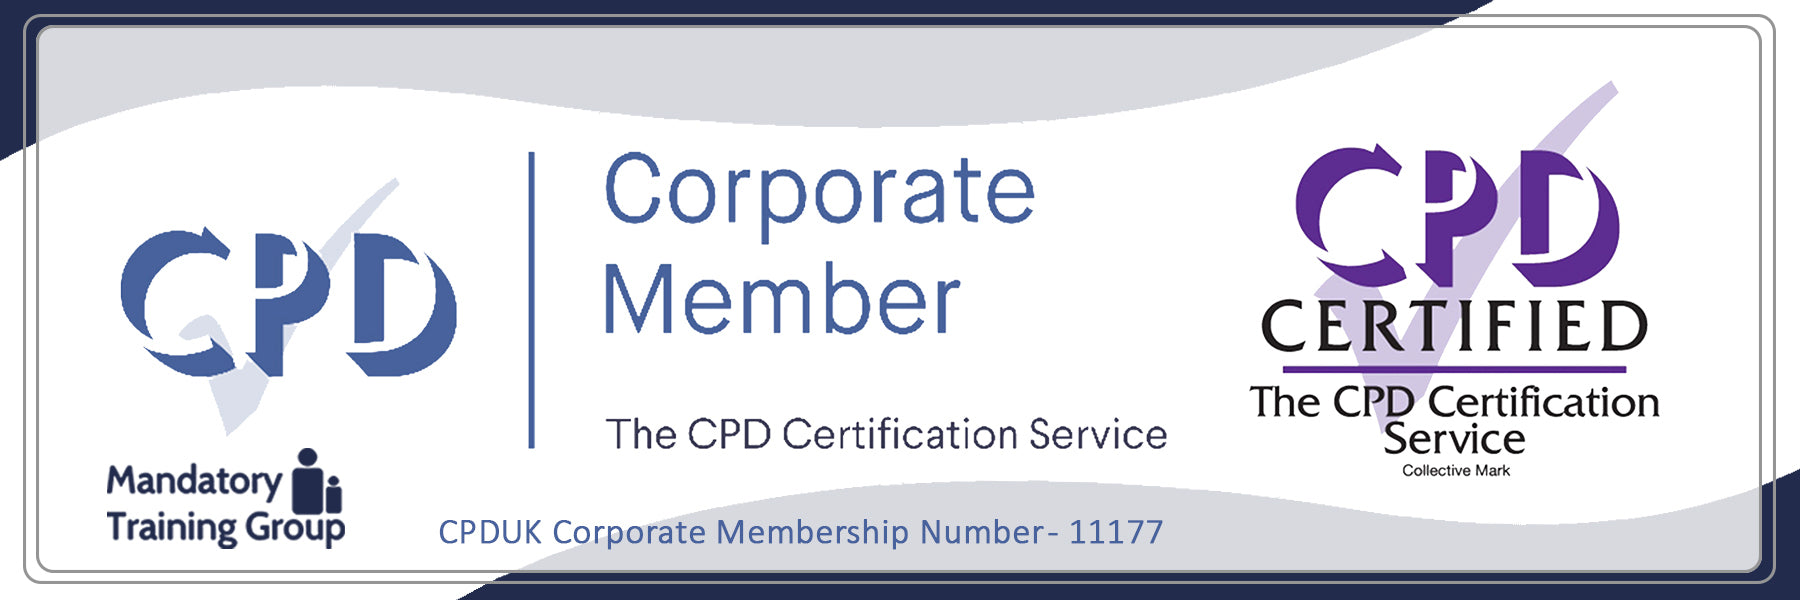 Introduction to Dentistry Ethics  - Courier Services Training Package - The Mandatory Training Group UK -